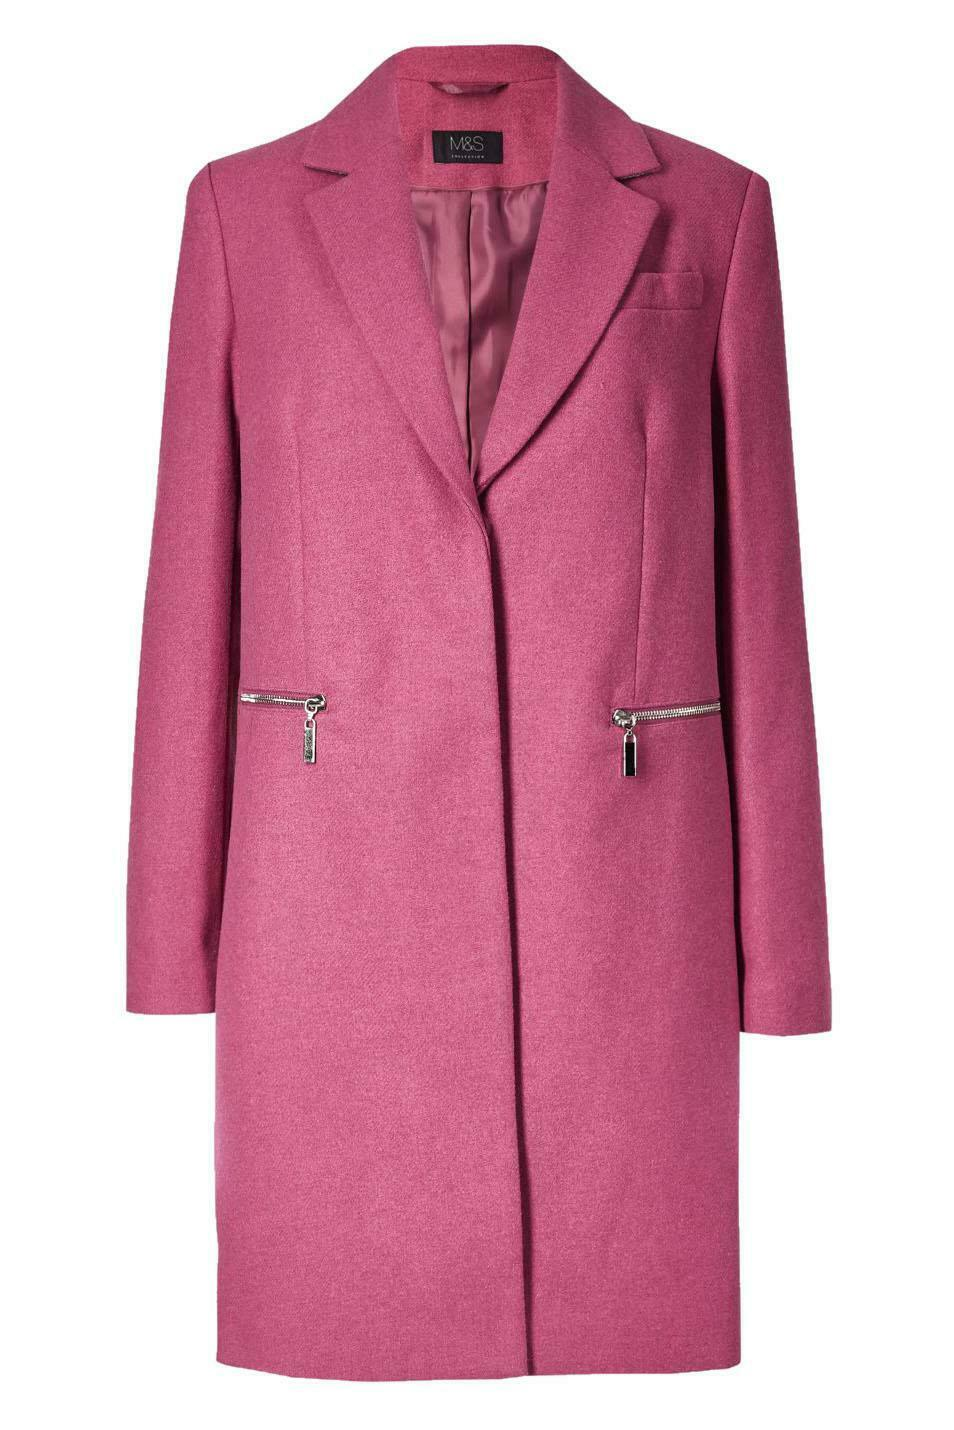 M-amp-S-Wool-Blend-Single-Breasted-Pink-Brown-Winter-Coat-Holly-Willoughby-Size-6-24 thumbnail 40